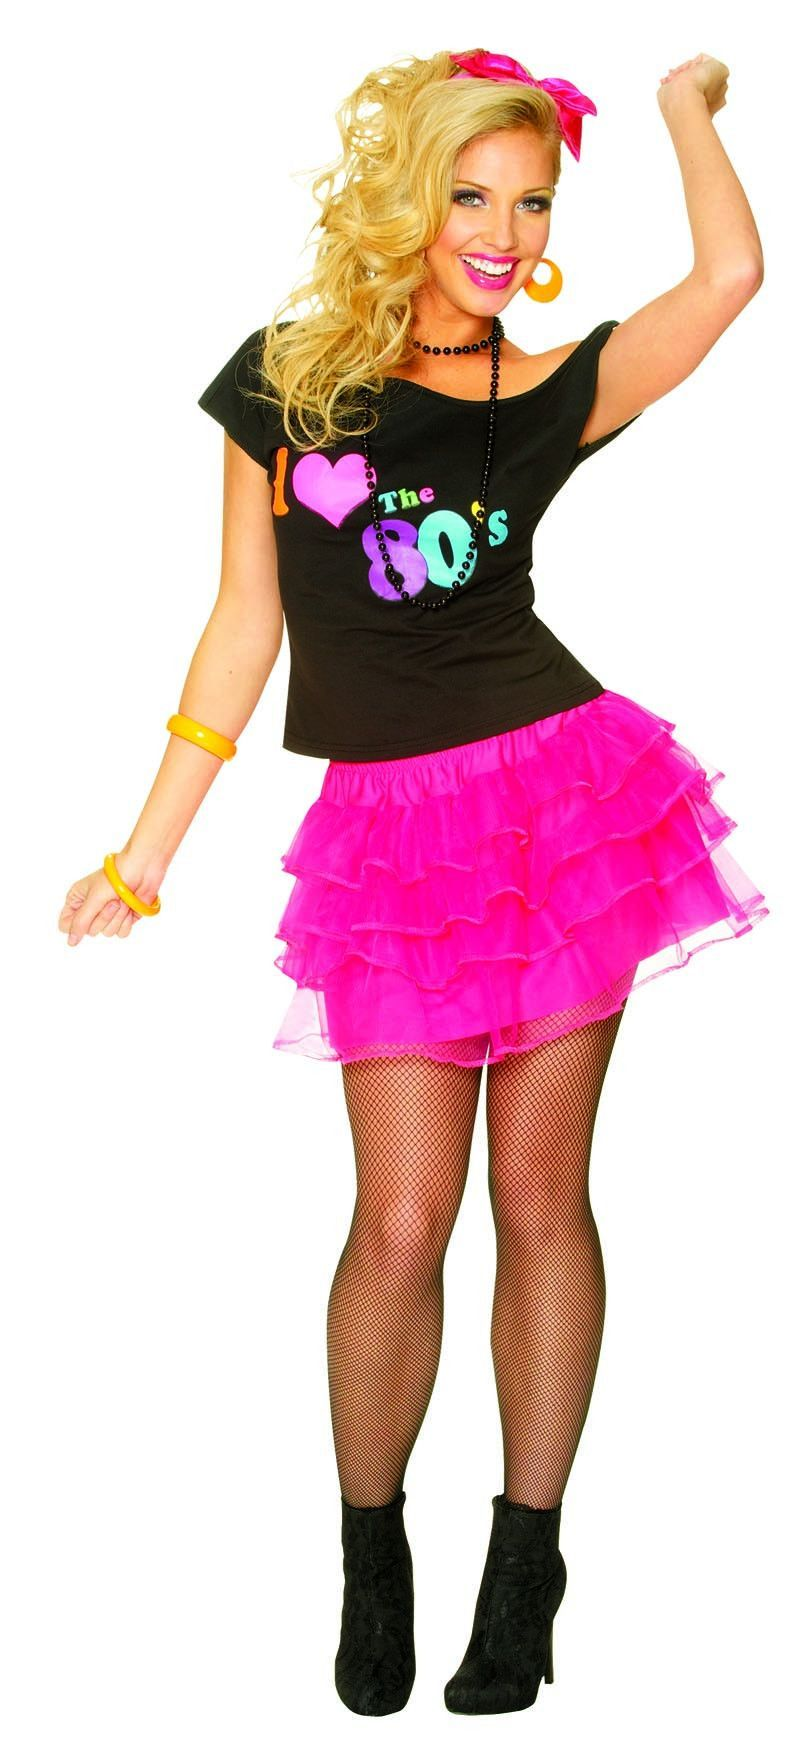 80's Petticoat 80s party outfits, 80s theme party